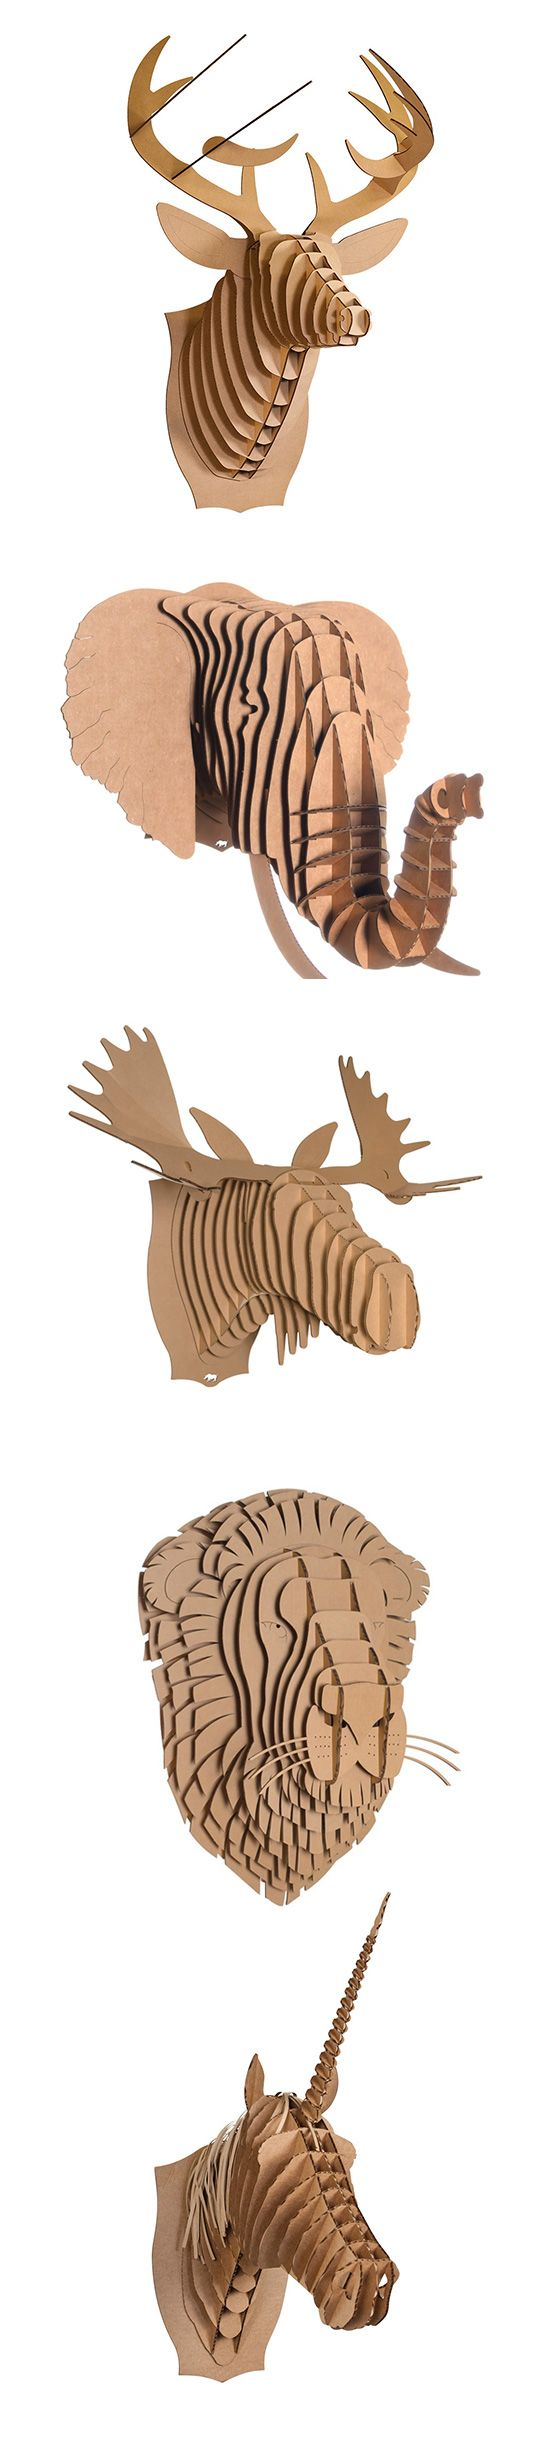 Restoration Hardware inspired! Create your own animal bust with this DIY